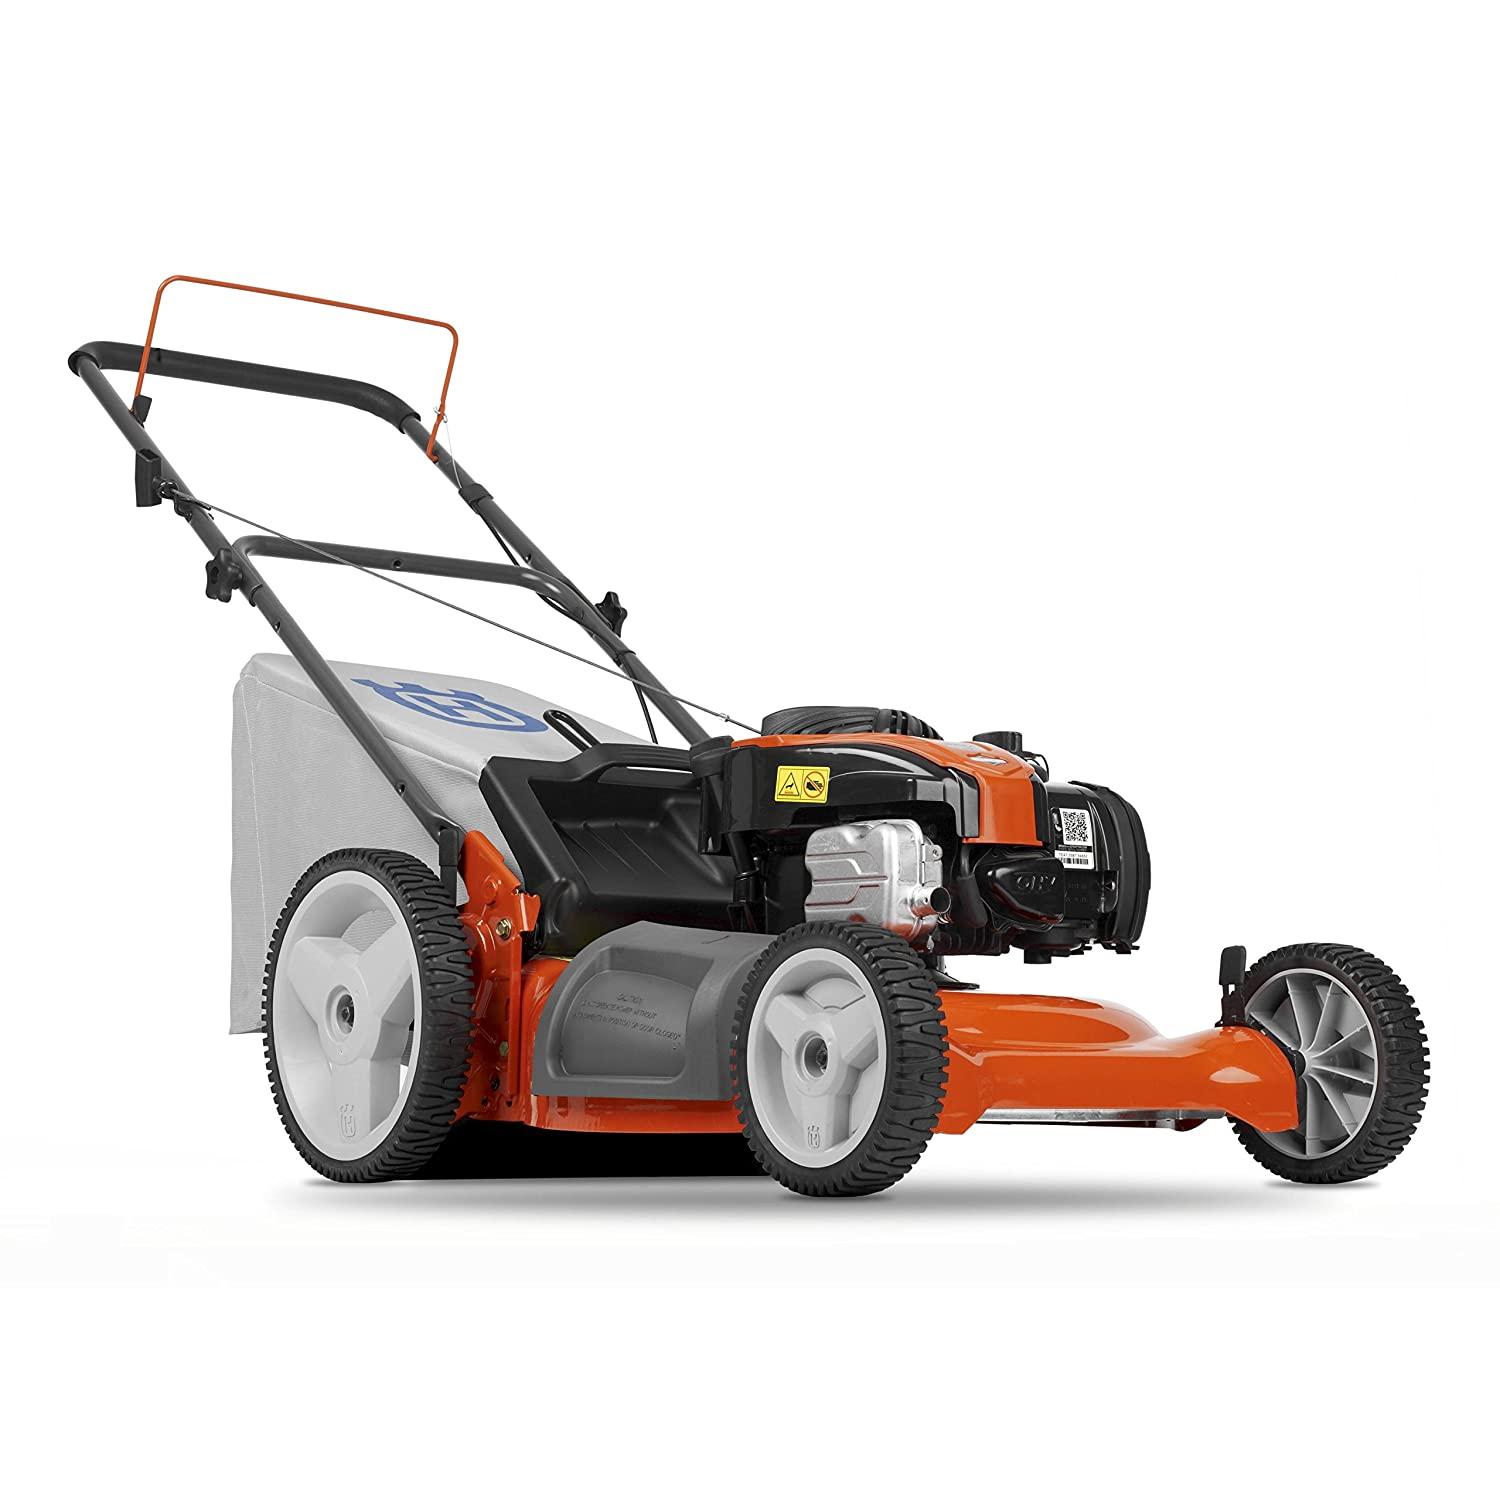 Husqvarna 5521P 21-inch 140cc Briggs & Stratton Gas-powered Lawn Mower